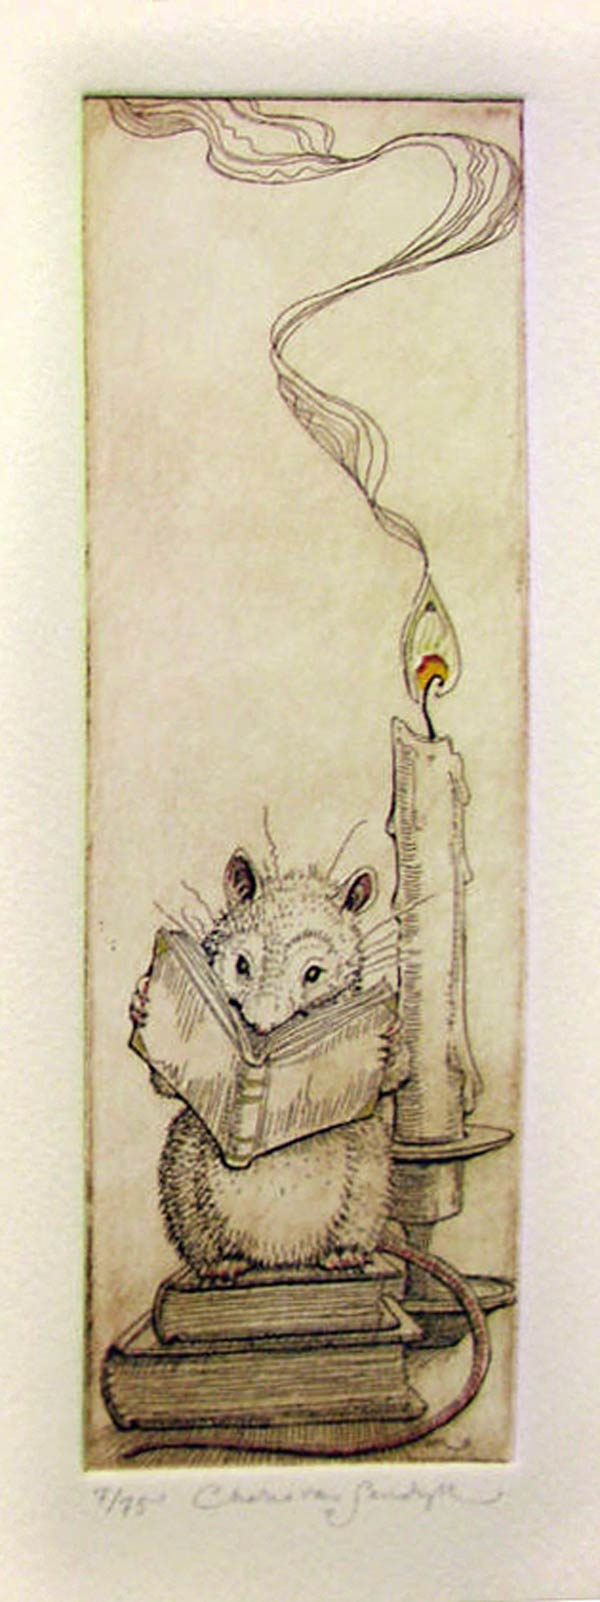 Literary Mouse [reading mouse with books and candle], etching with gilt (Charles van Sandwyk, 2011)